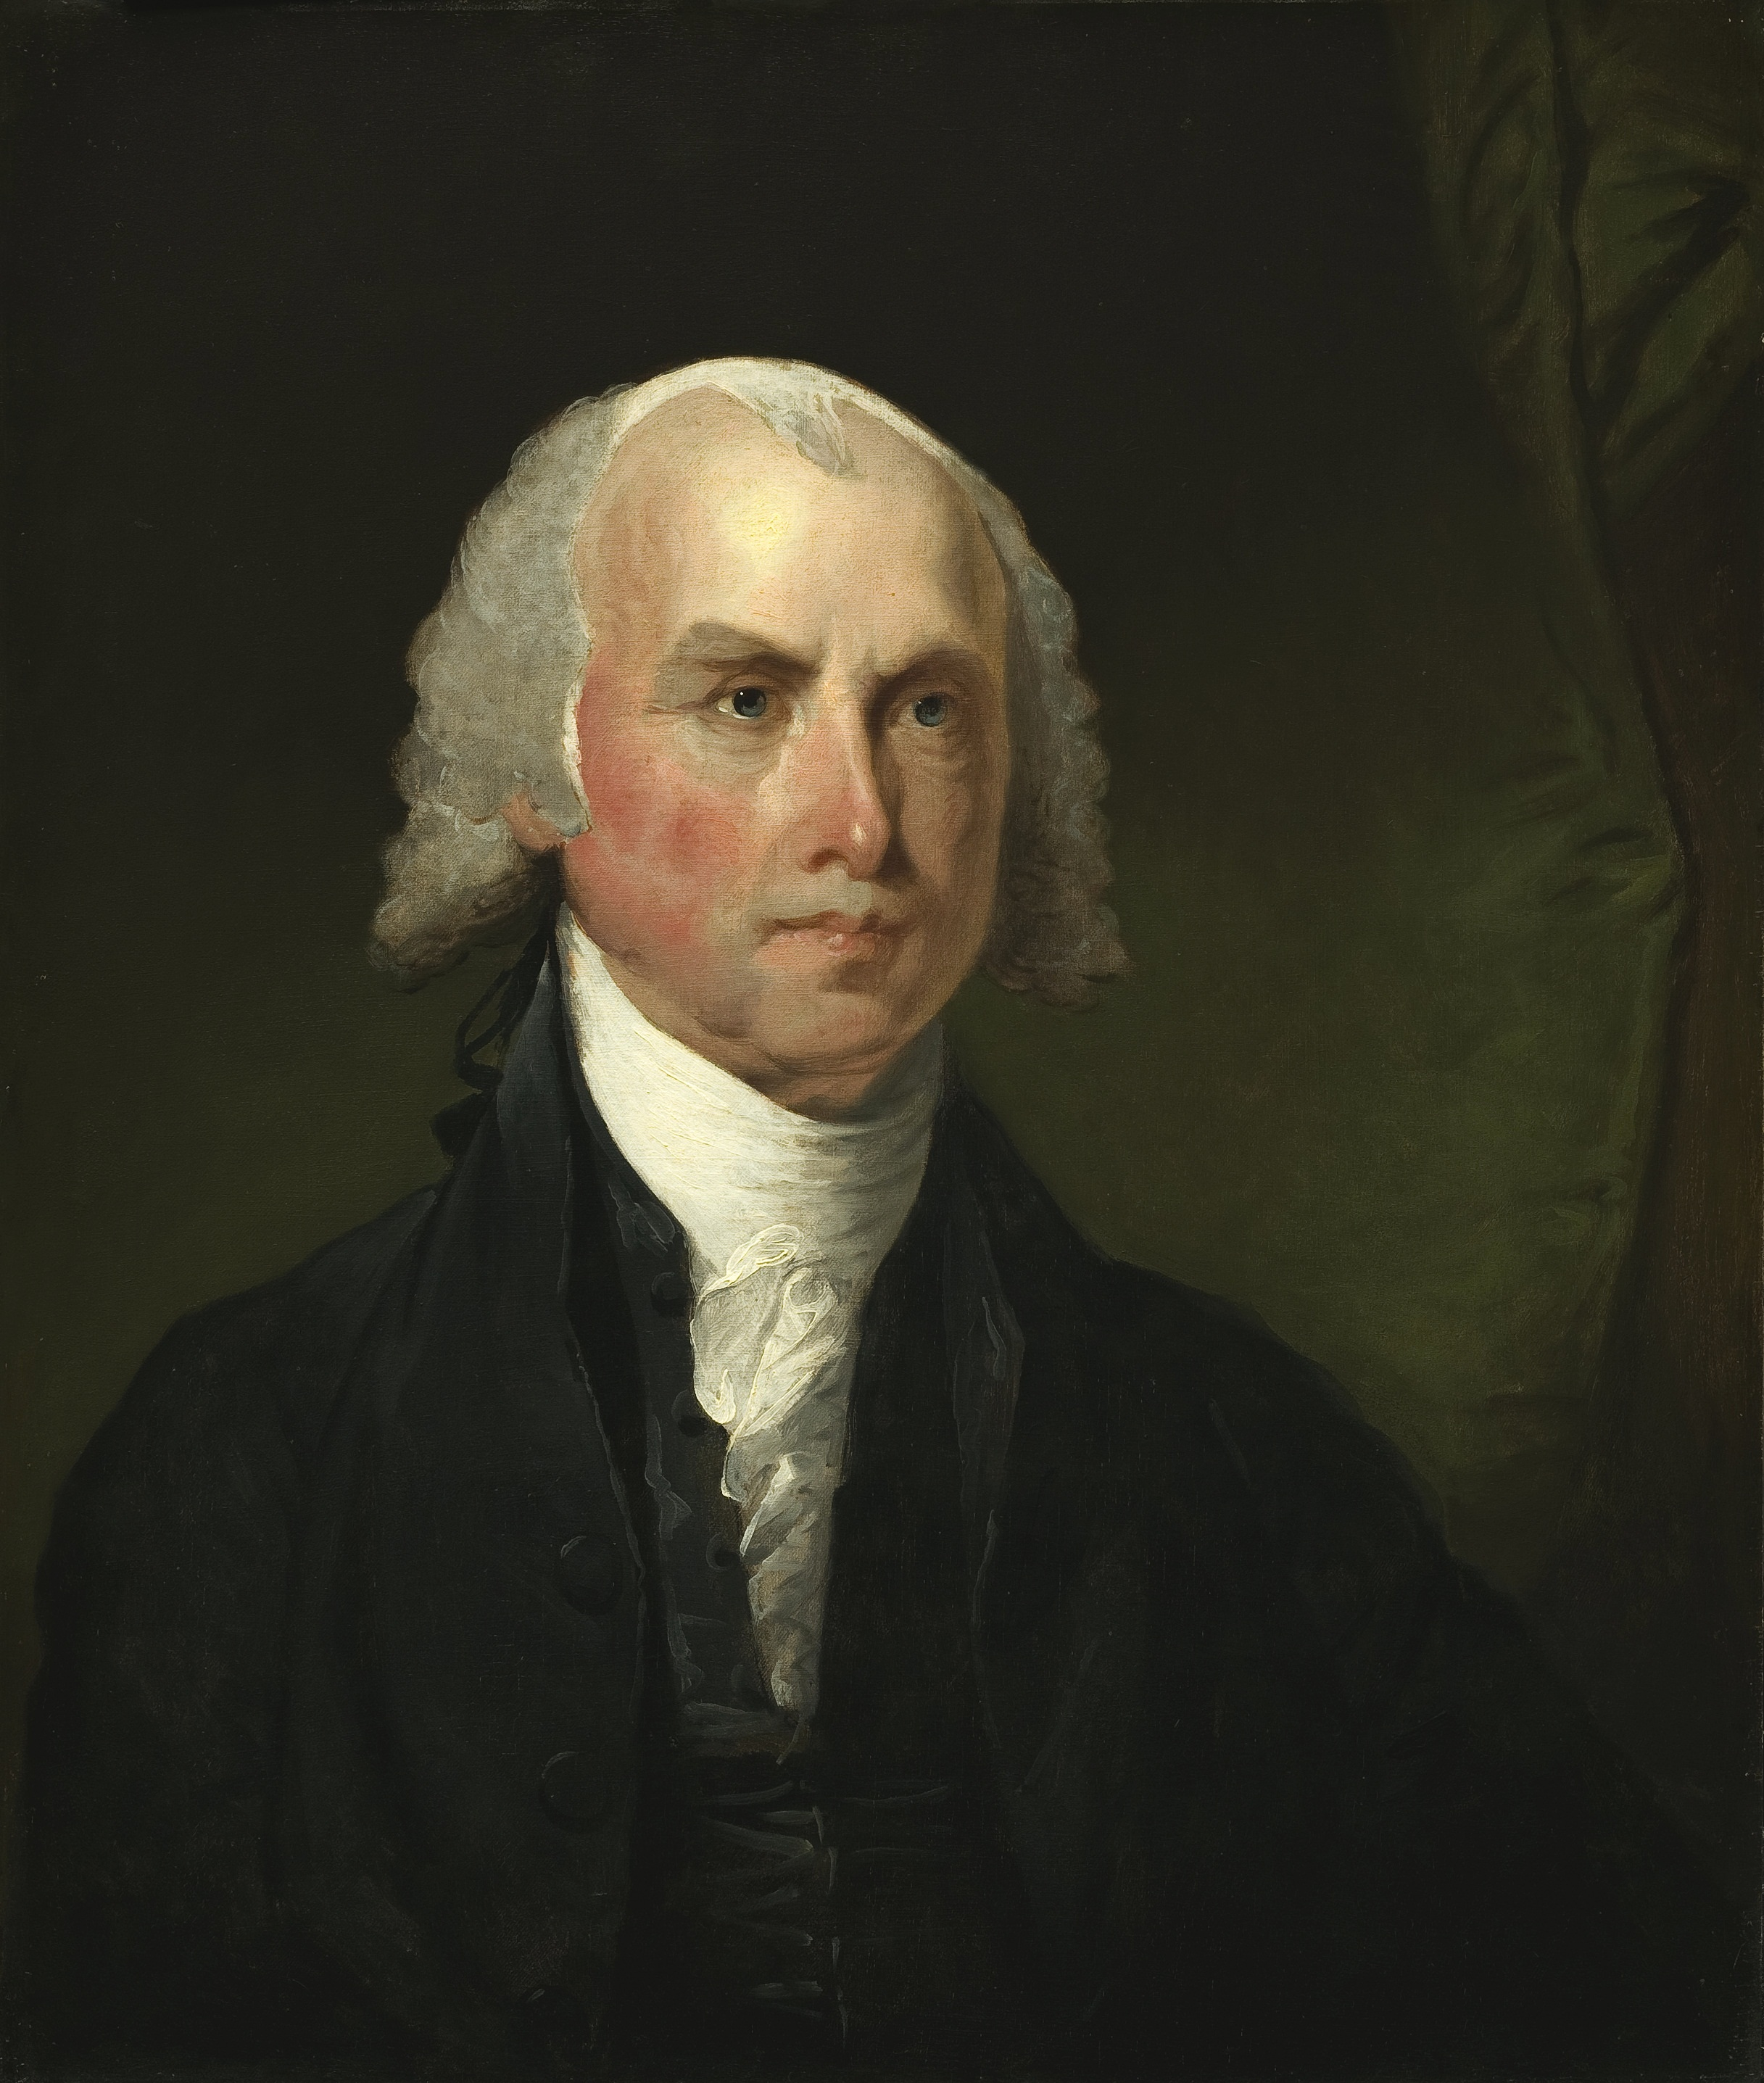 the history of the political career of james madison the fourth president of the united states History of the united states during the administrations of james madison american history the president and history of the united states.